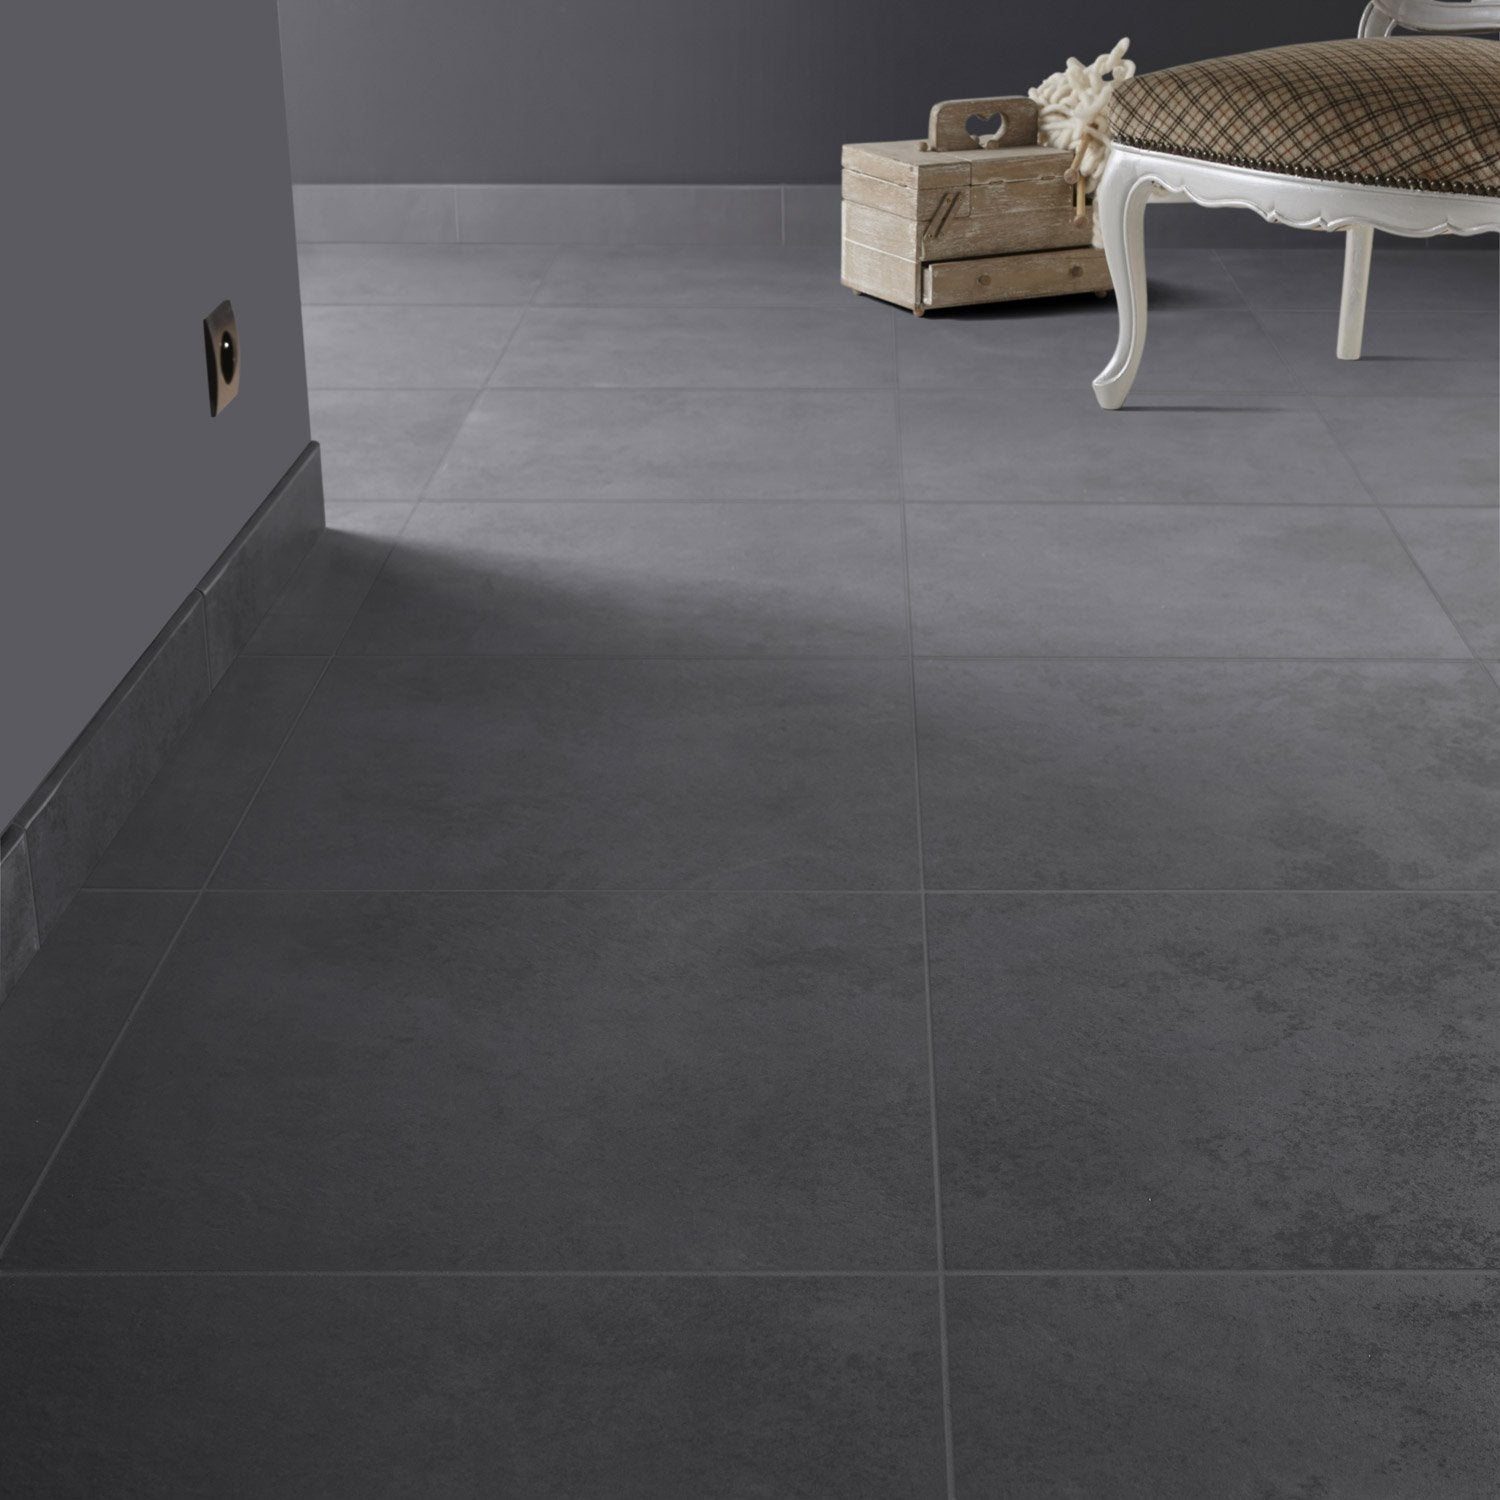 Carrelage beton cire leroy merlin maison design for Carrelage harlem leroy merlin